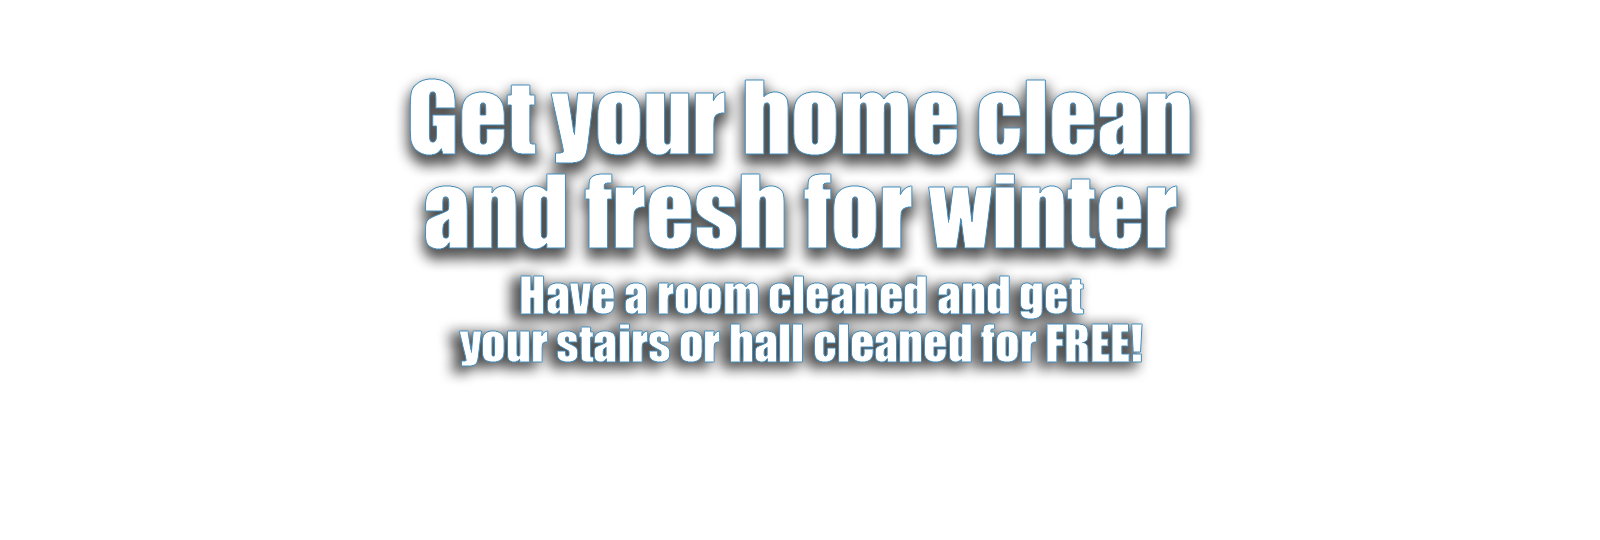 Christmas carpet cleaning offer